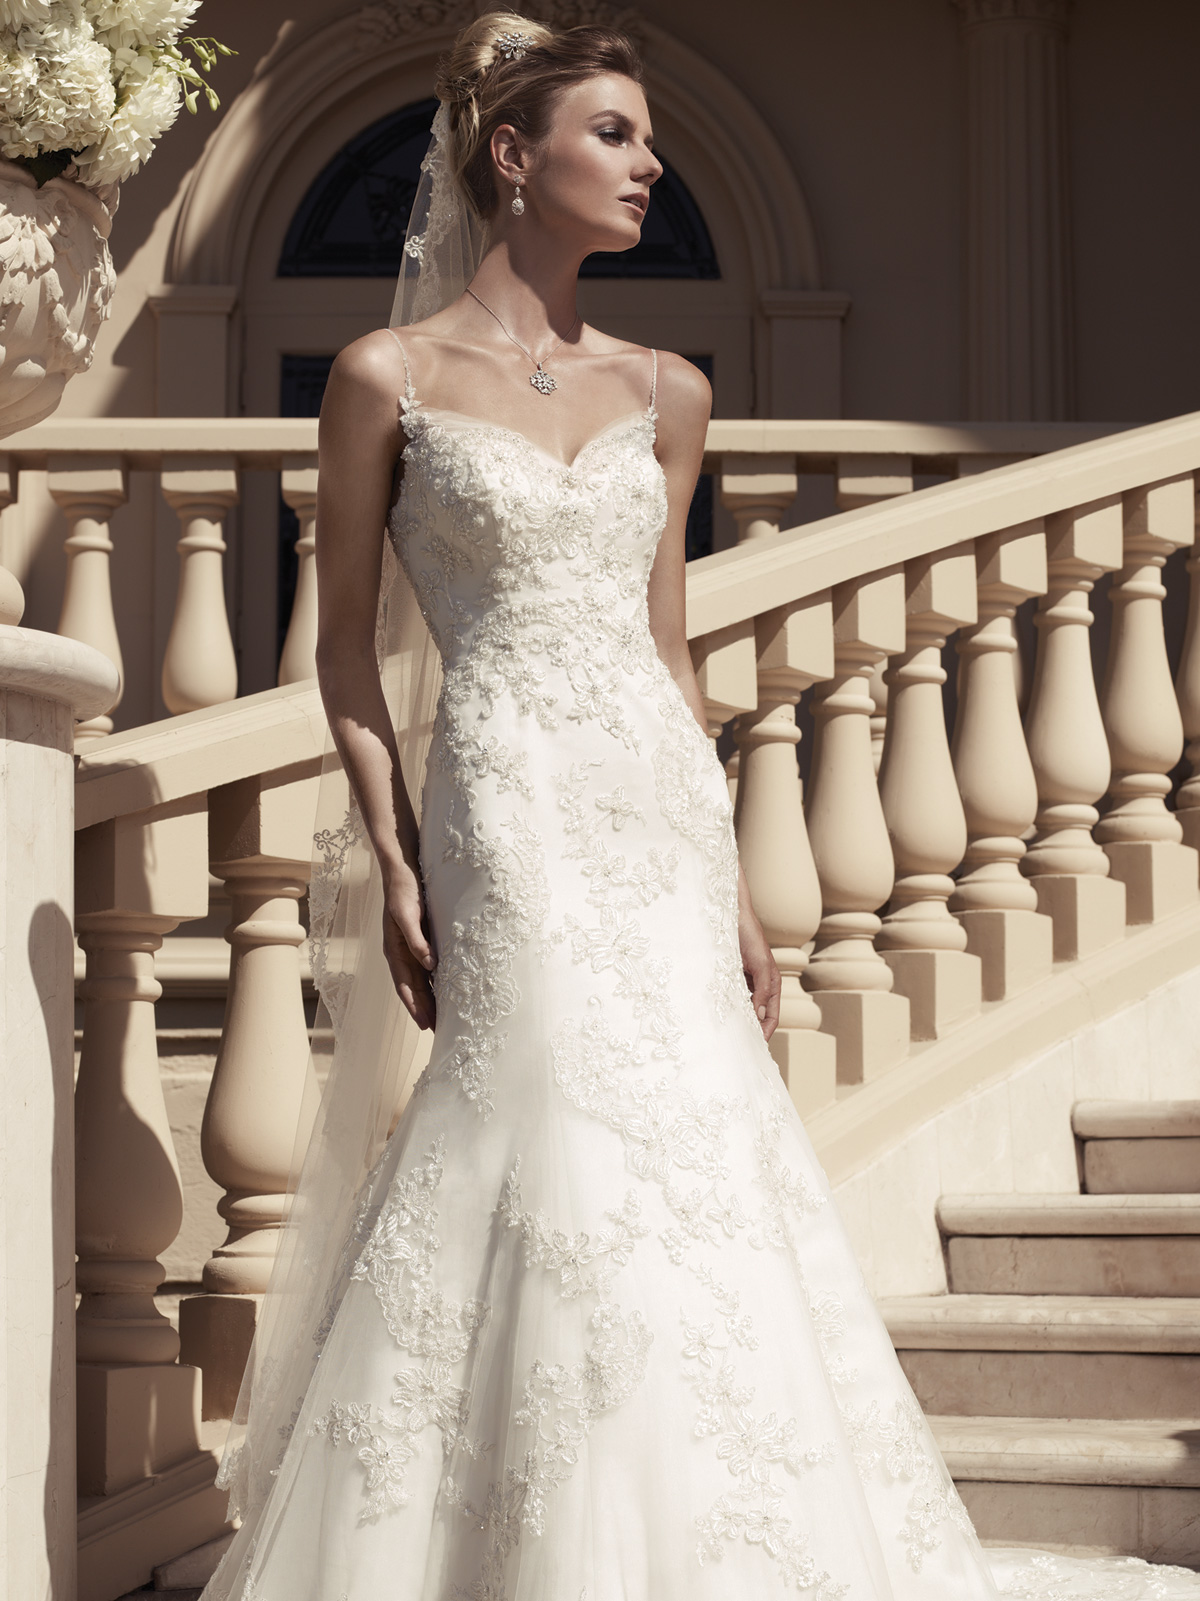 Spaghetti Strap Fit And Flare Casablanca Bridal Gown 2117